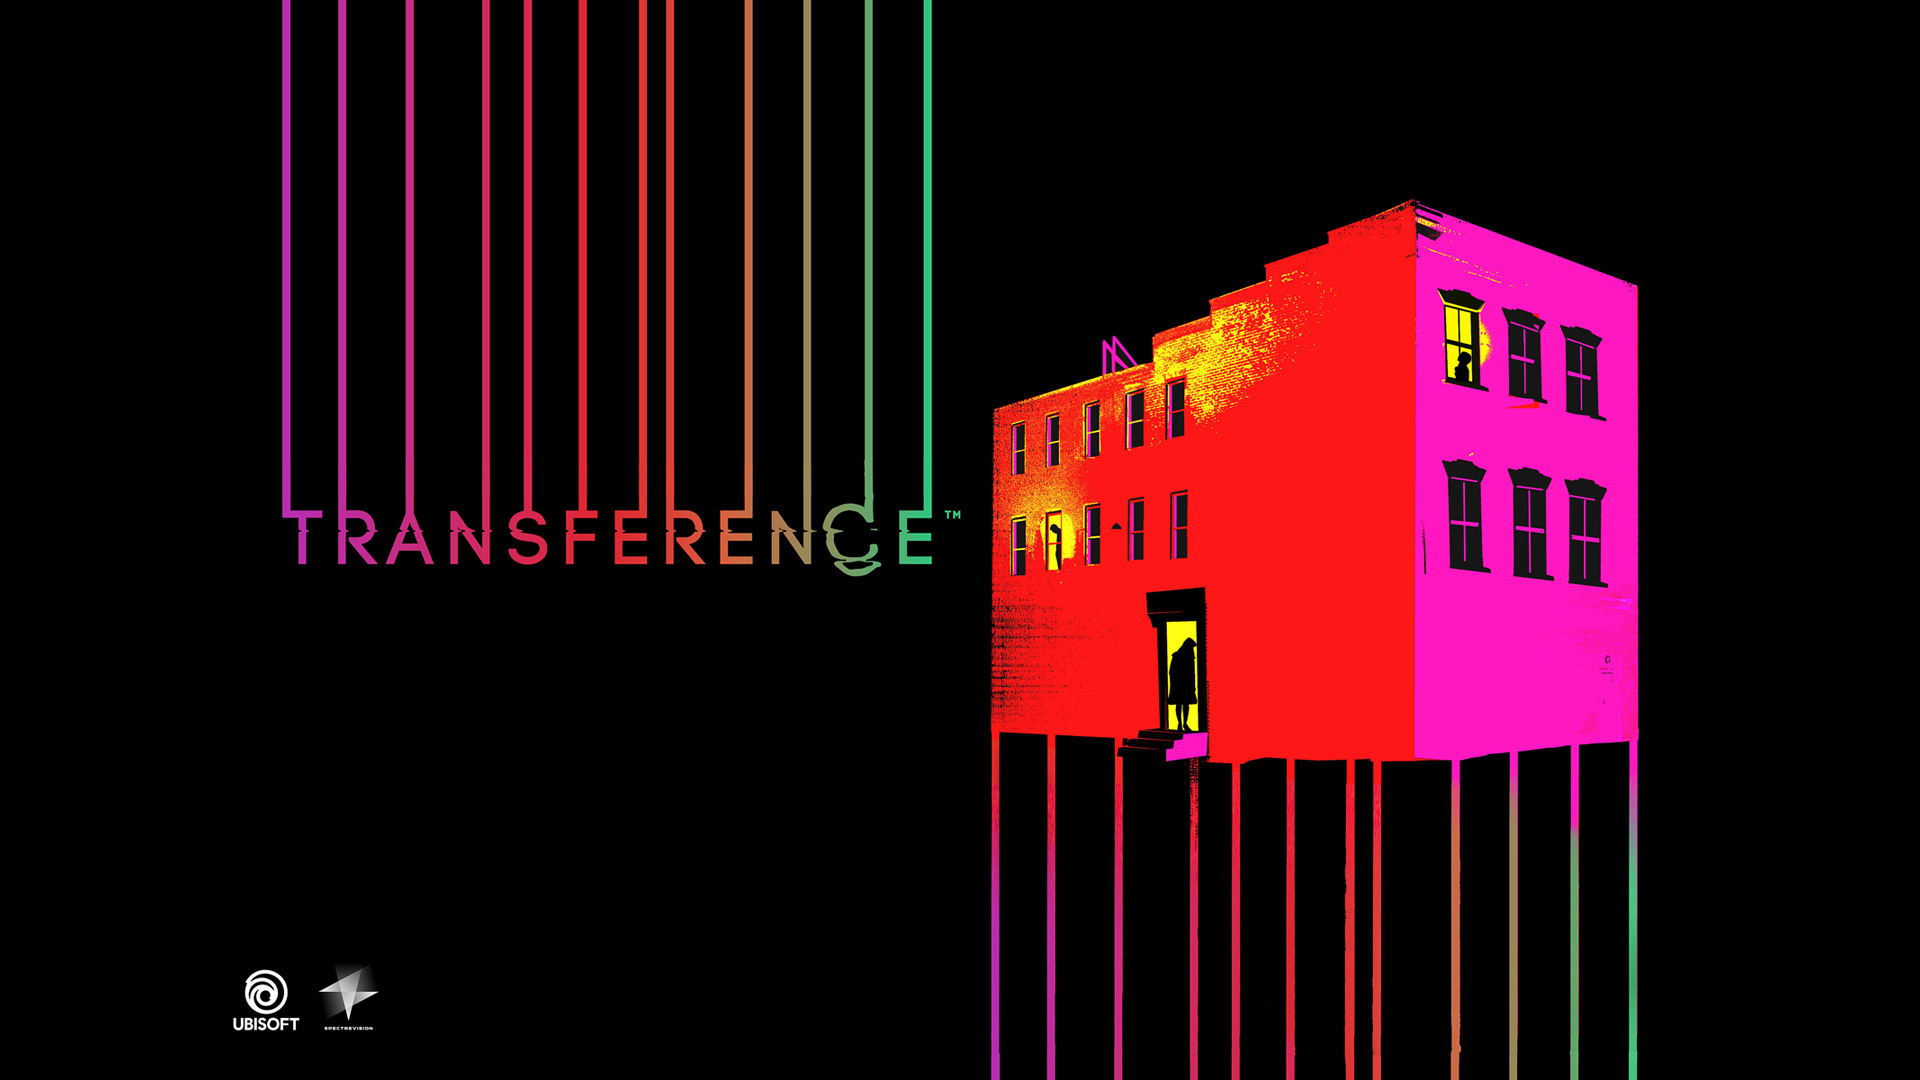 Free Transference Wallpaper in 1920x1080